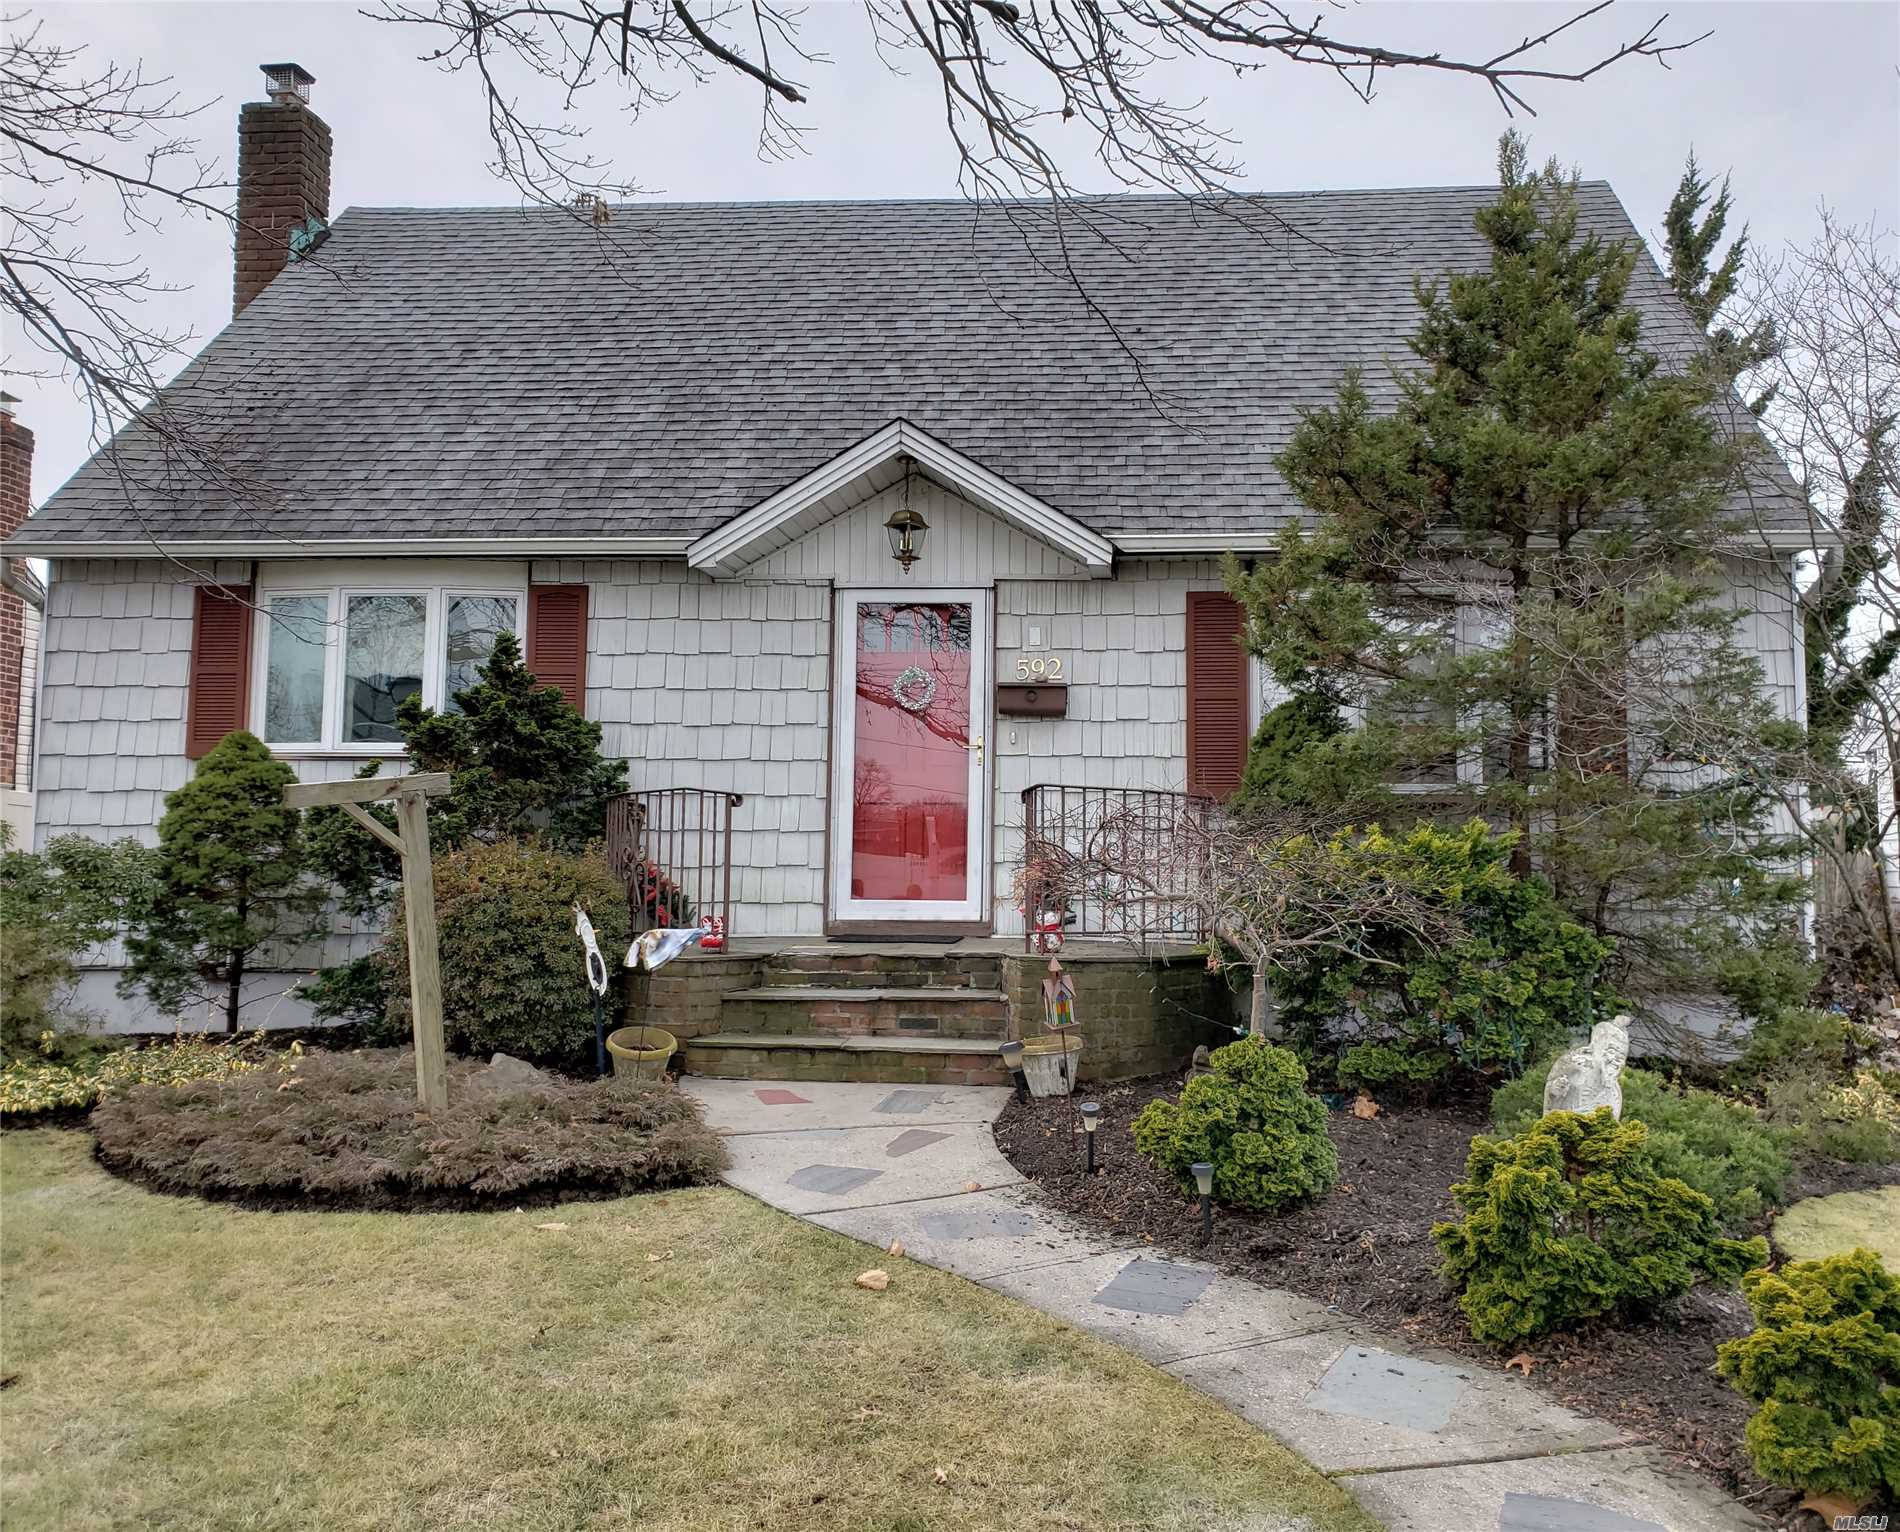 Lovely Expanded Cape Located Mid-Block On A Quiet Street. Featuring Expanded Eat-In-Kitchen With Sliders To Wood Deck. Mbr On 1st Floor, Formal Dining Room, Updated Bath With Laundry Shoot, Recessed Lights, Hardwood Floors. Gas Stove & H/W Heater. Finished Basement With Utility/Laundry Area. Detached 1.5 Garage With Overhang, Igs. Must See!